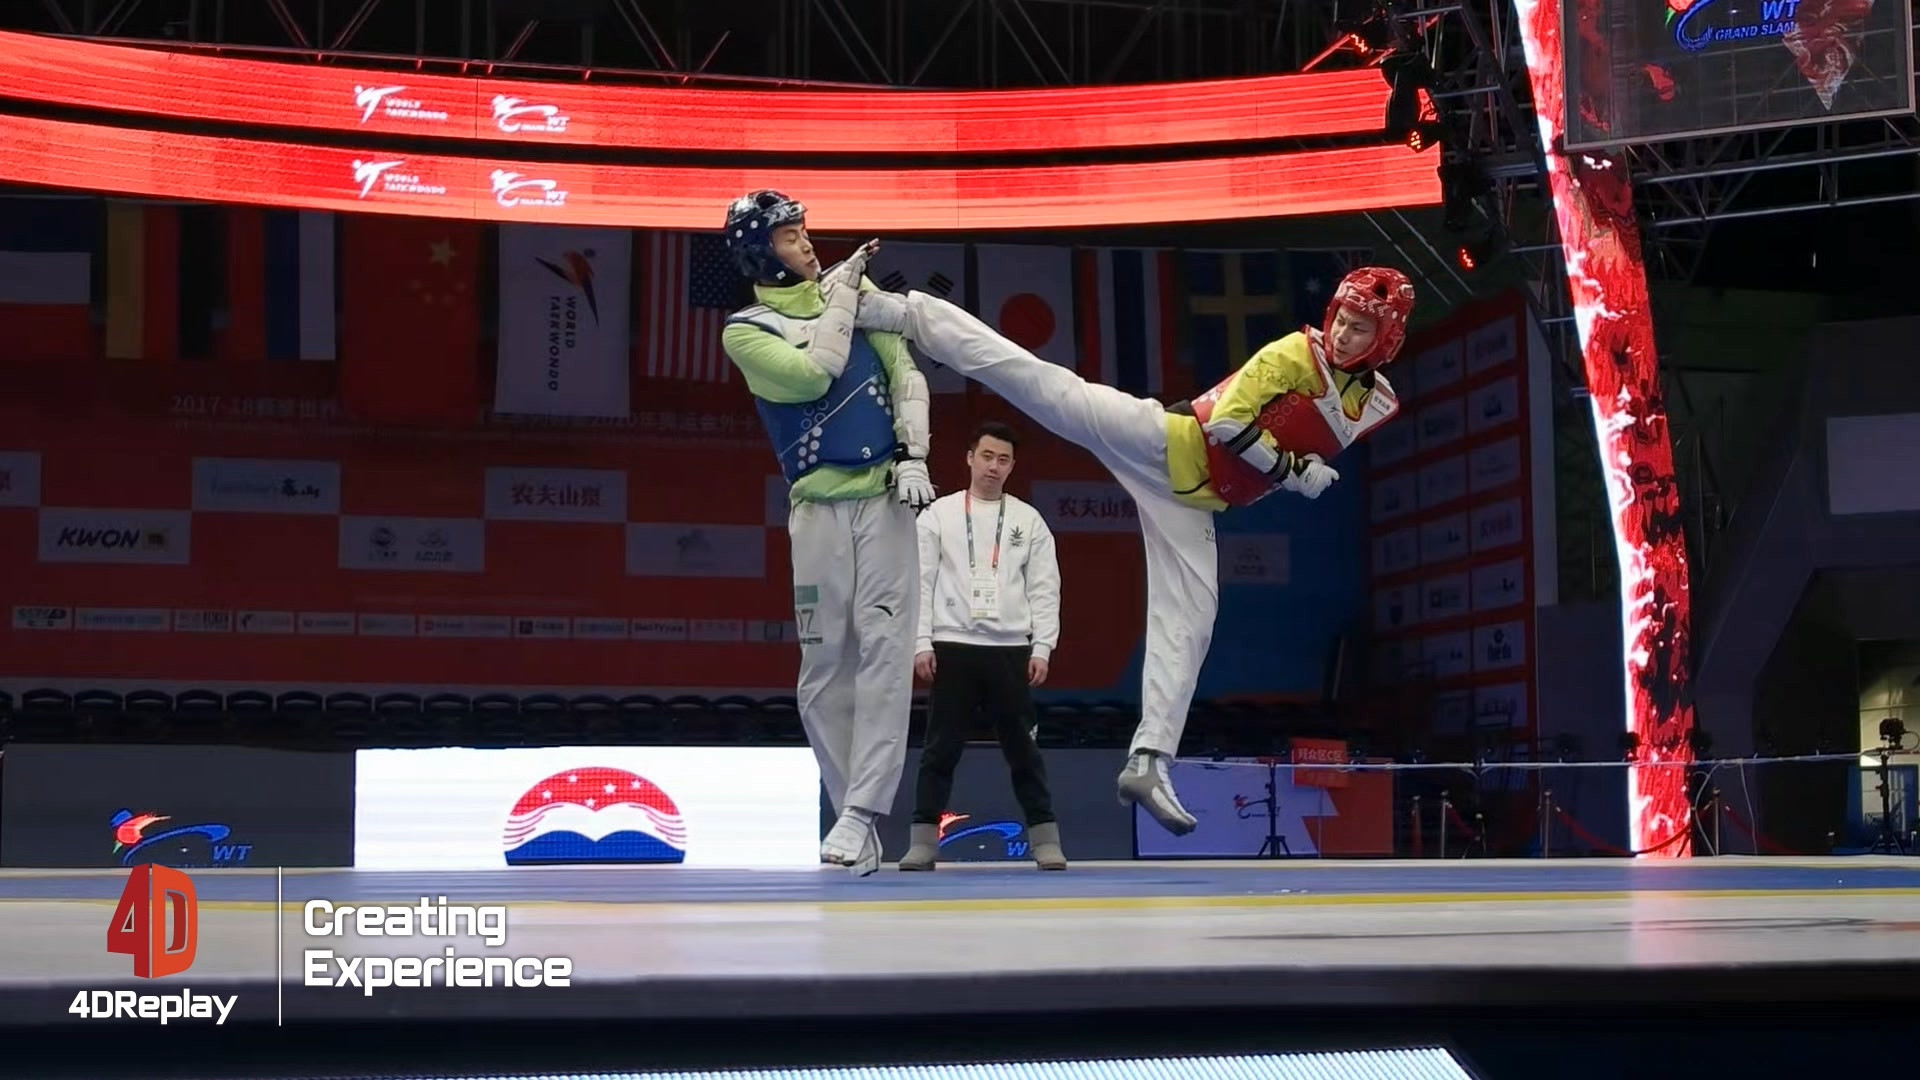 Choue praises World Taekwondo's innovation following launch of 4D cameras